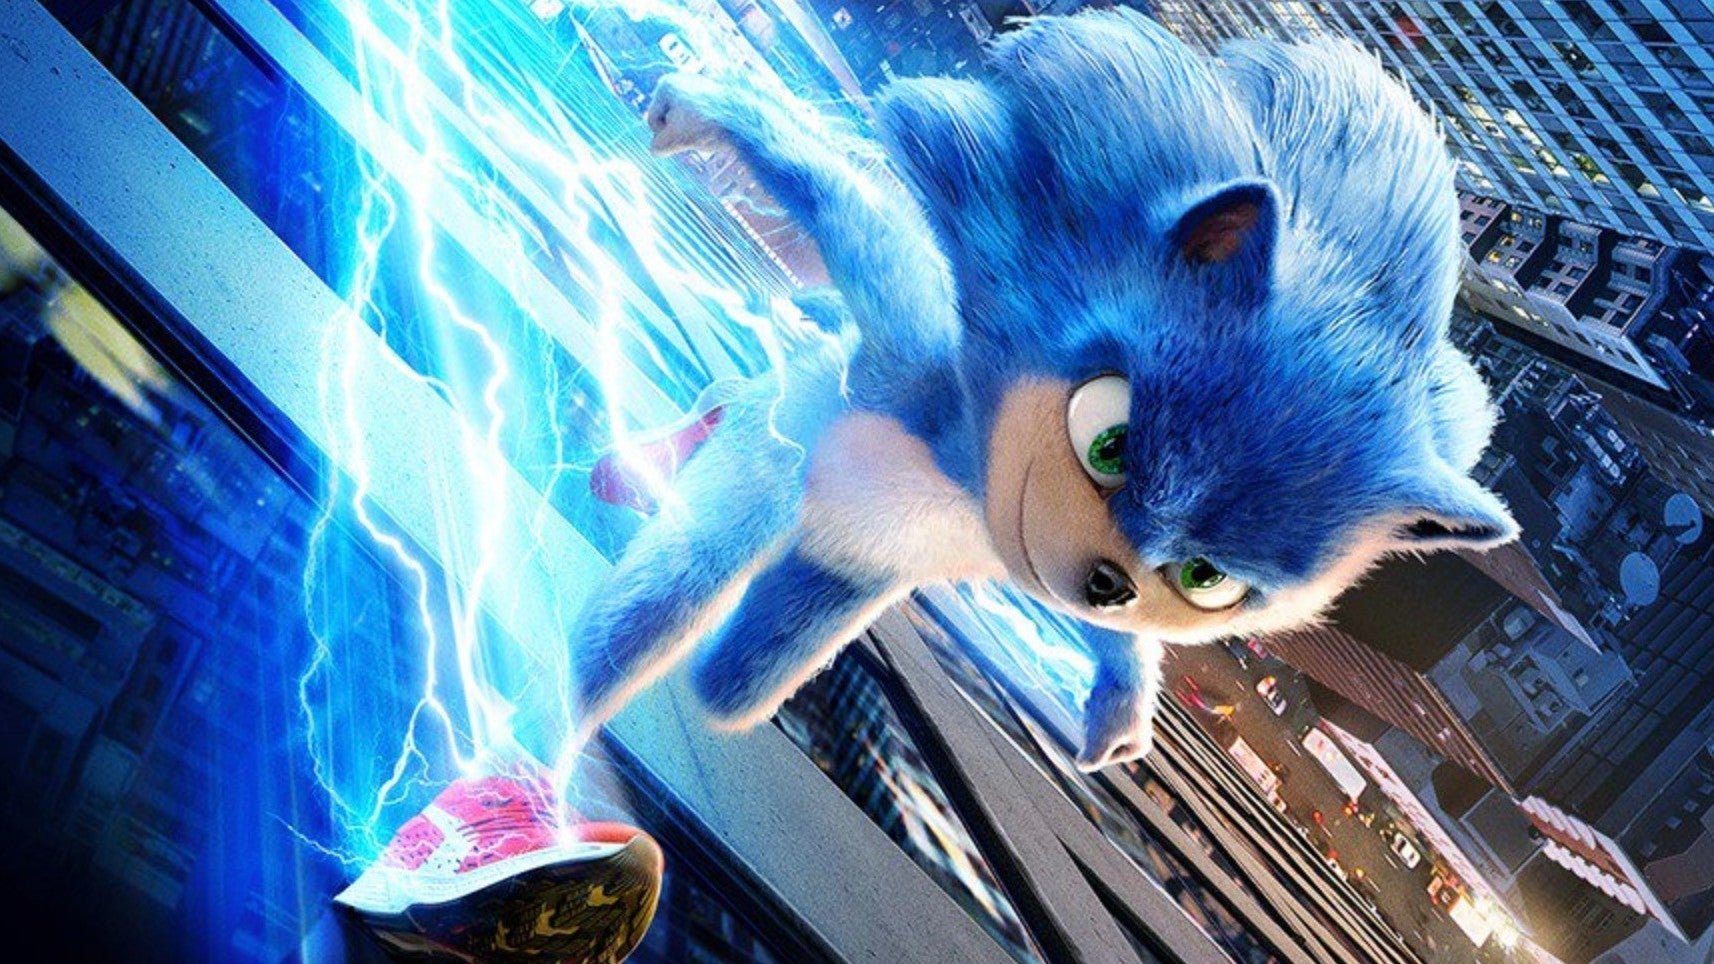 The Director Of Sonic The Hedgehog Vows To Change Sonic S Design After Trailer Response